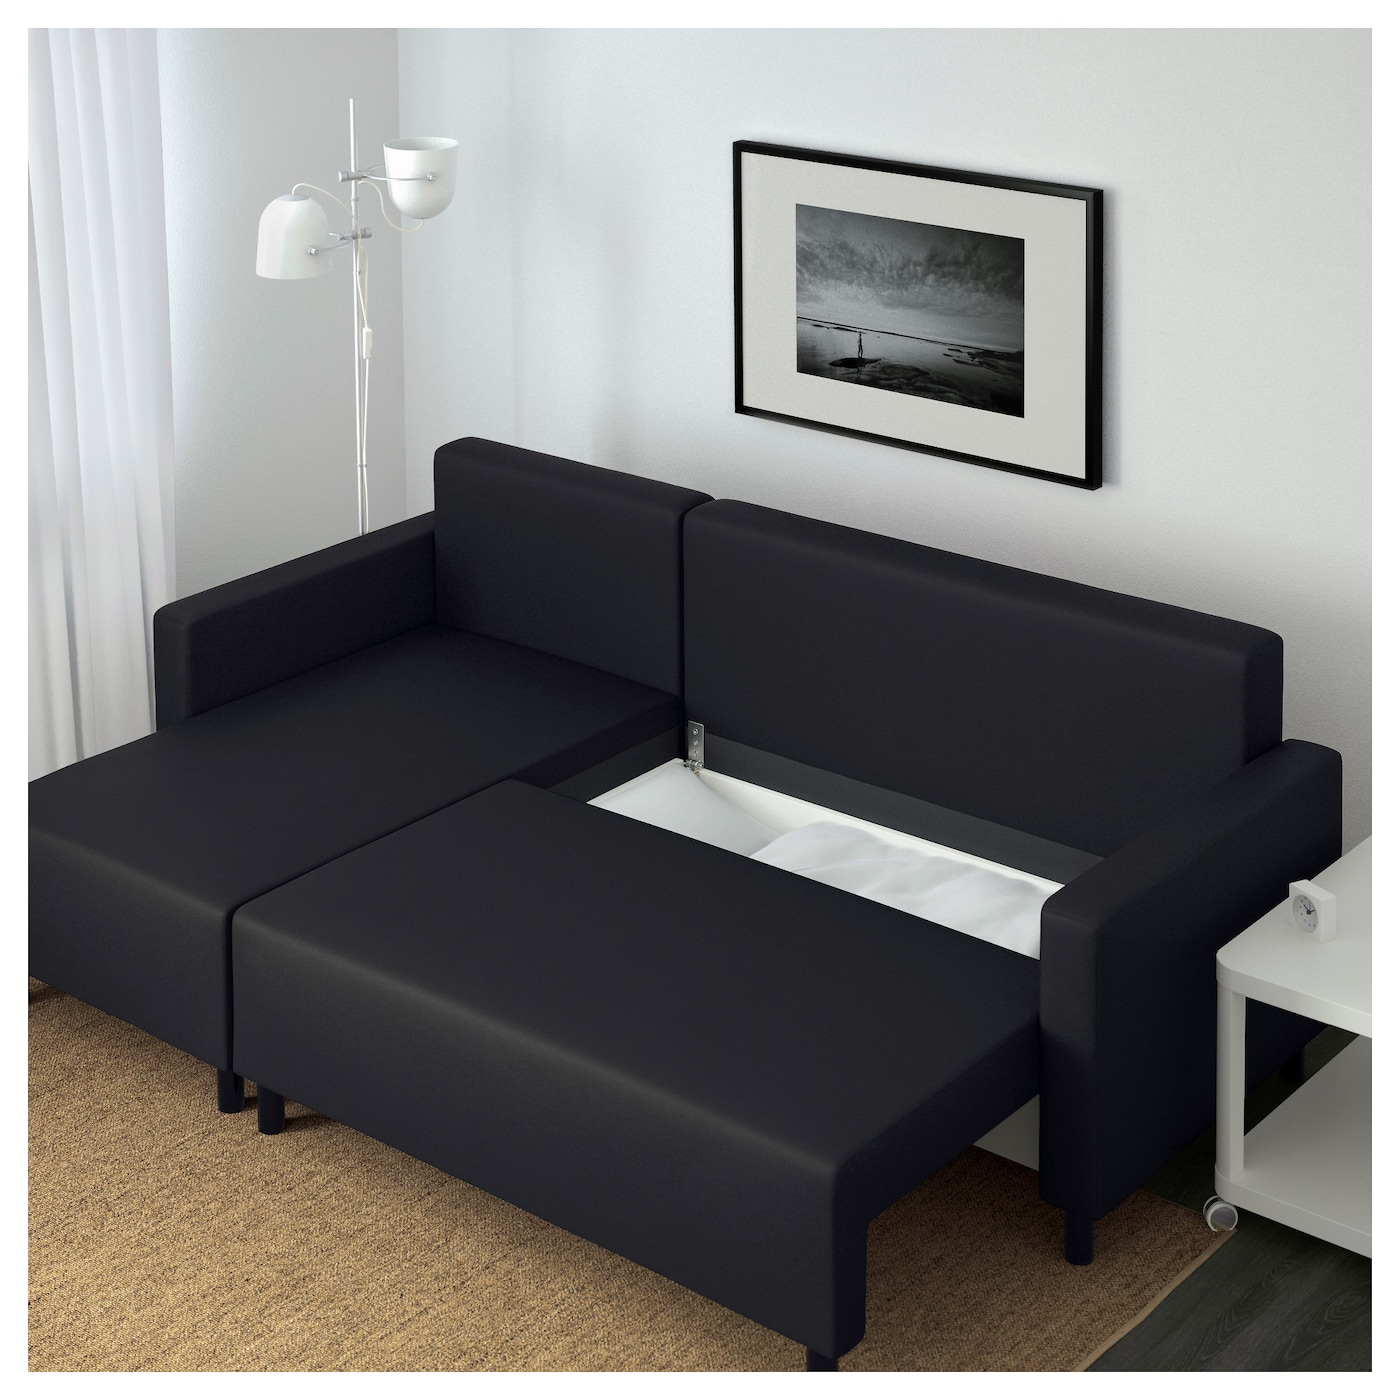 Lugnvik sofa bed with chaise longue gran n black ikea for Chaise sofa bed